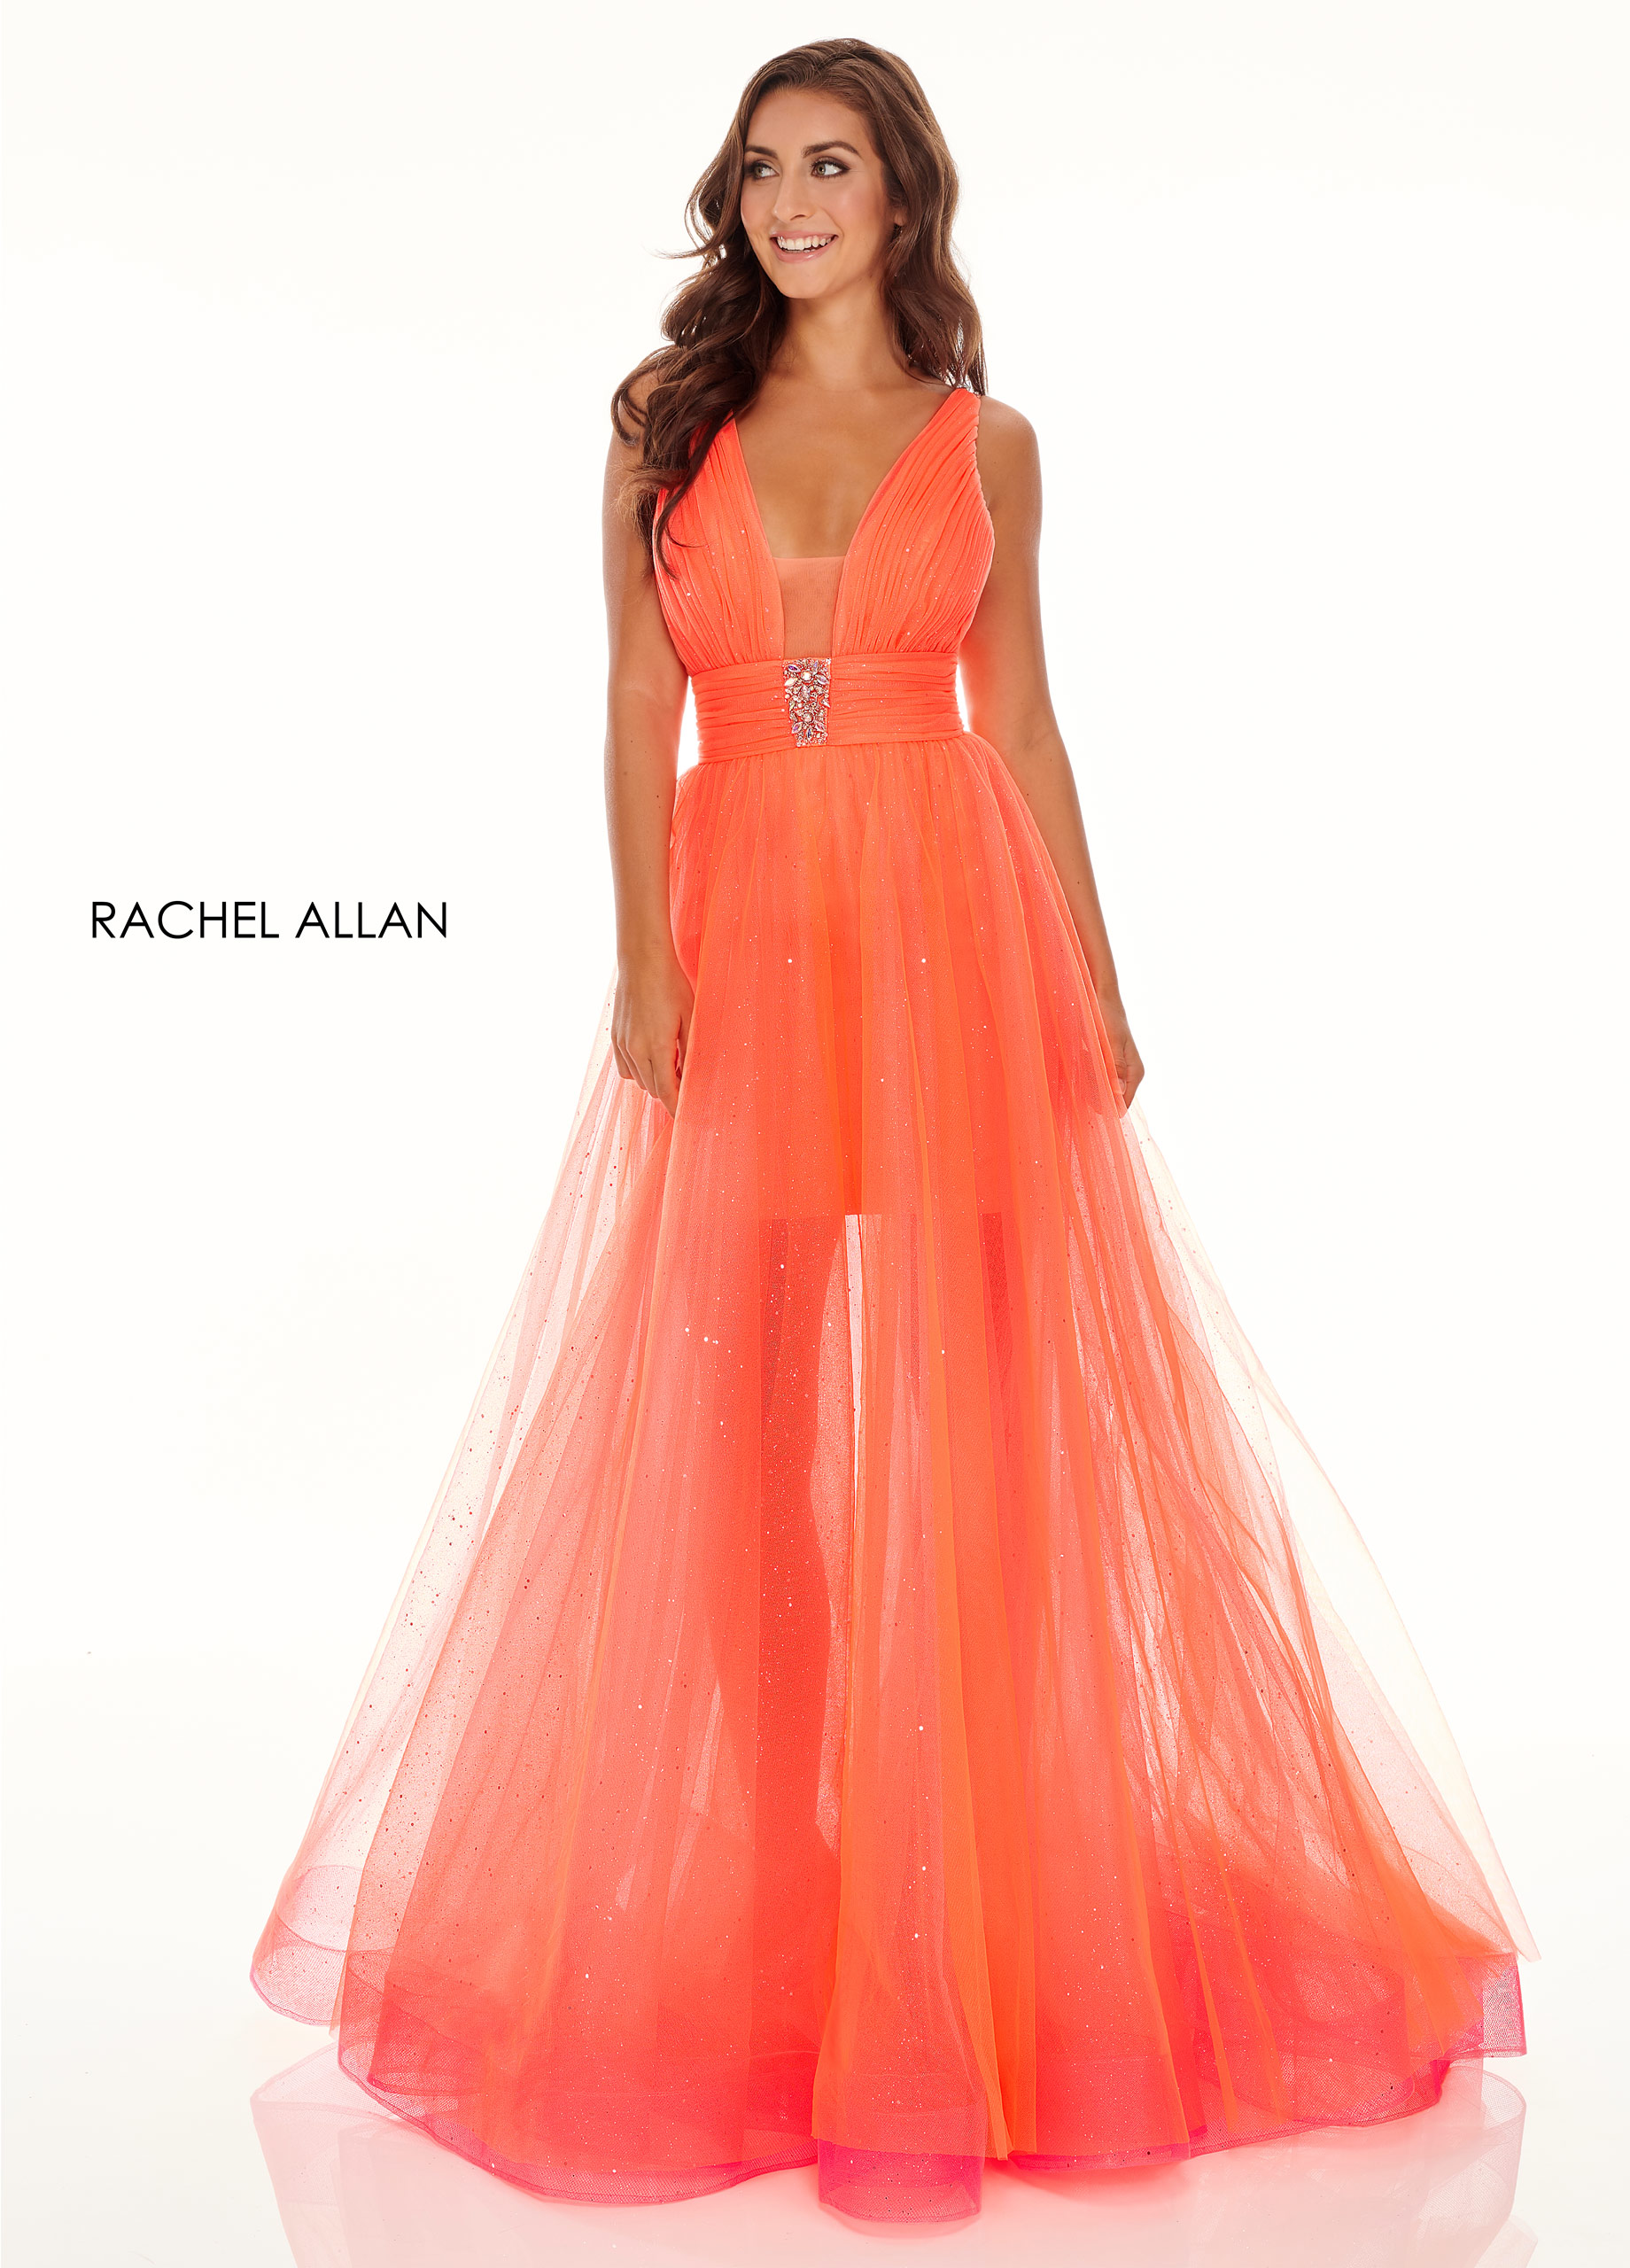 V-Neck Skirt With Overlay Prom Dresses in Coral Color